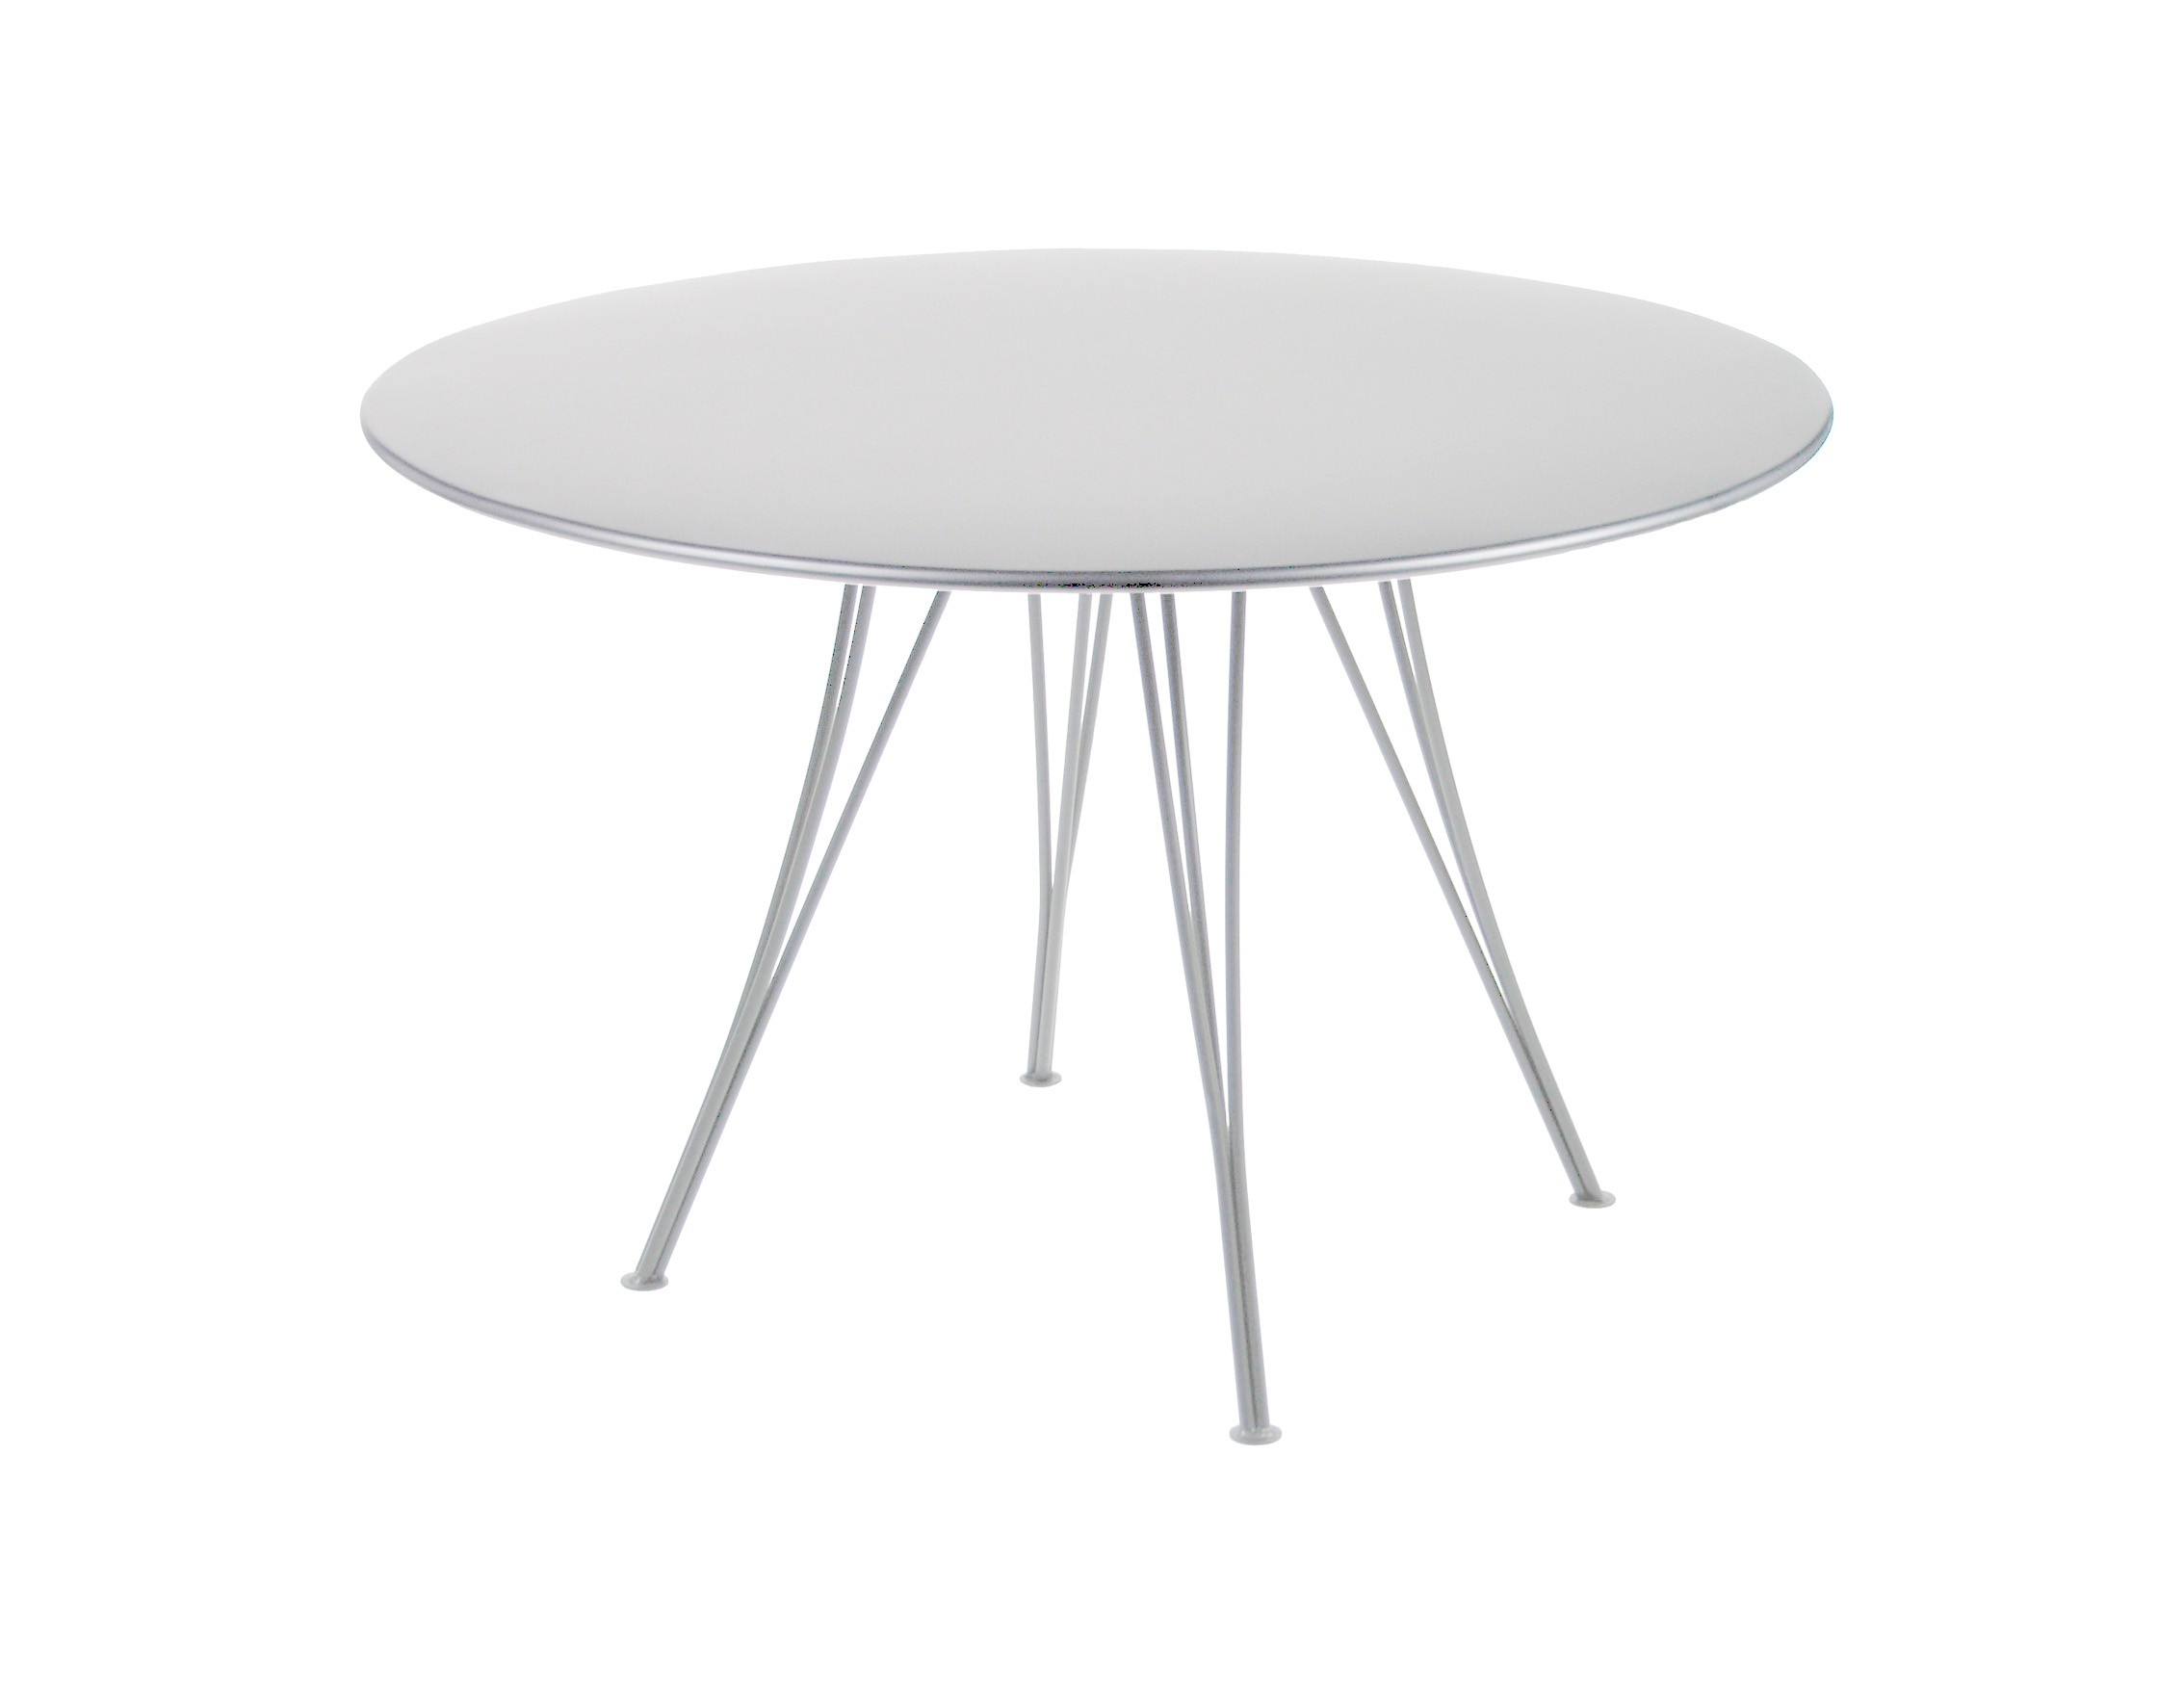 Table ronde pas cher design acheter sur internet table for Acheter table